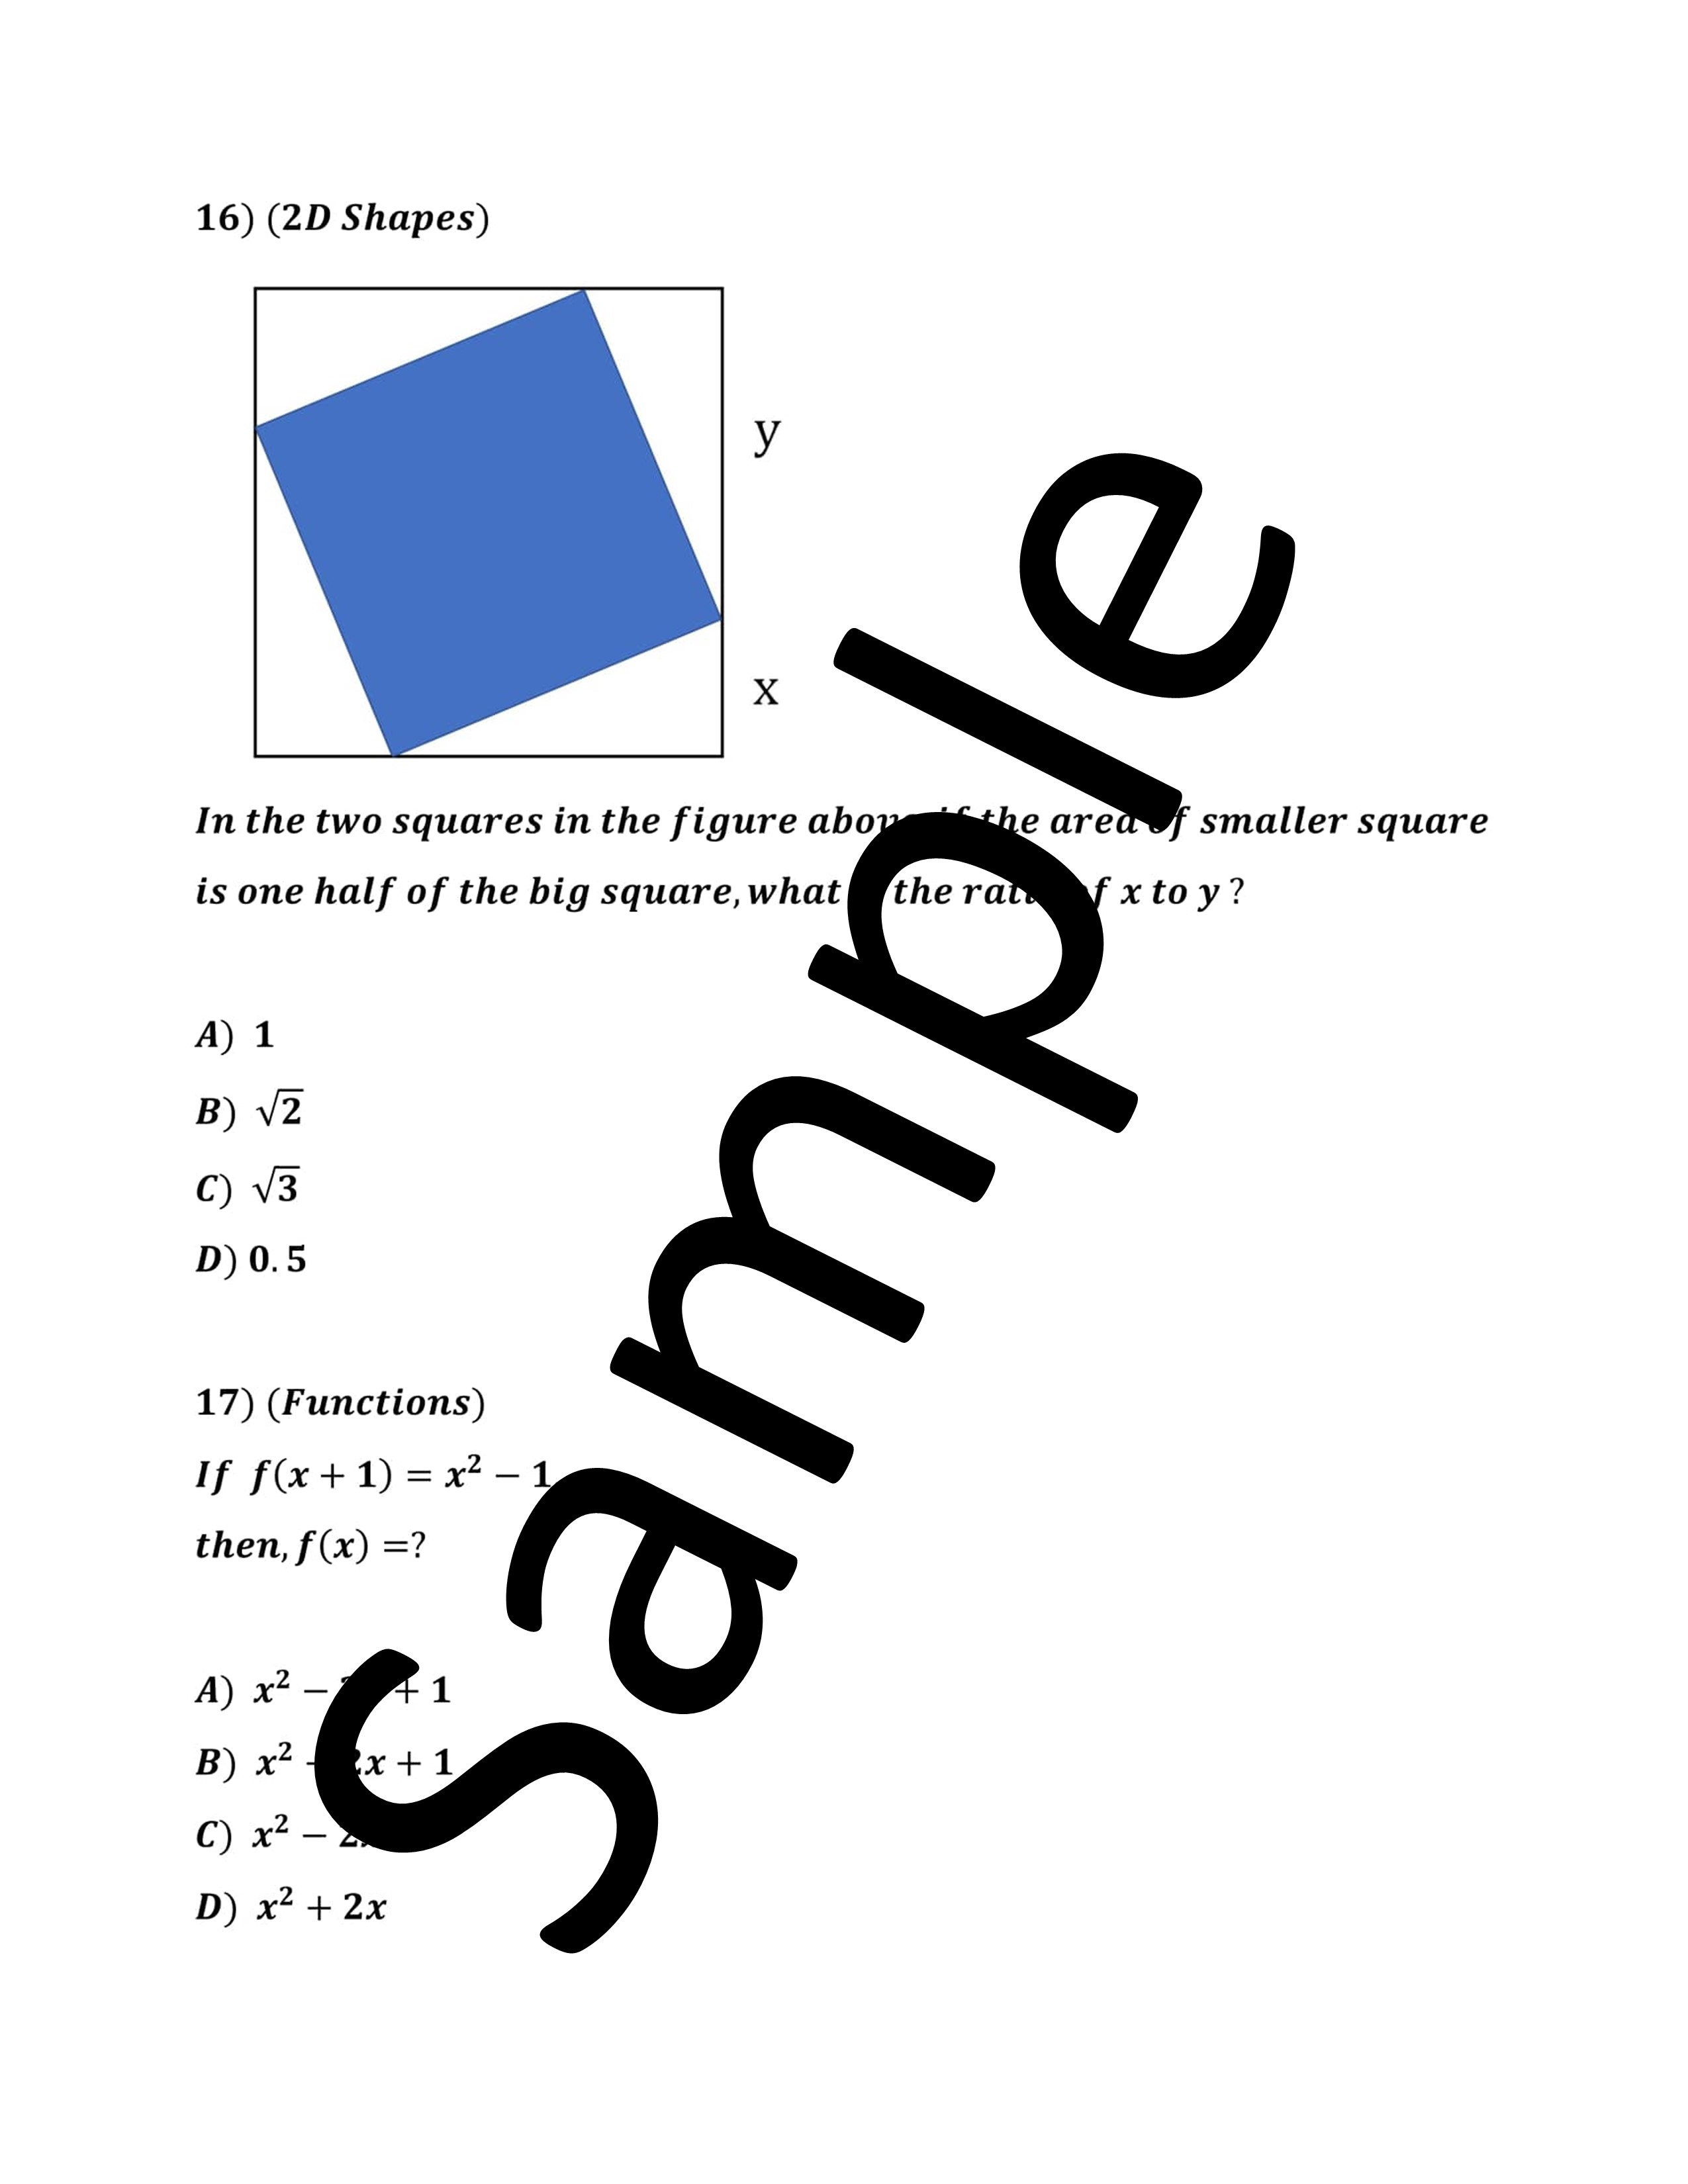 30 Difficult SAT Math Problems with Video Solutions on